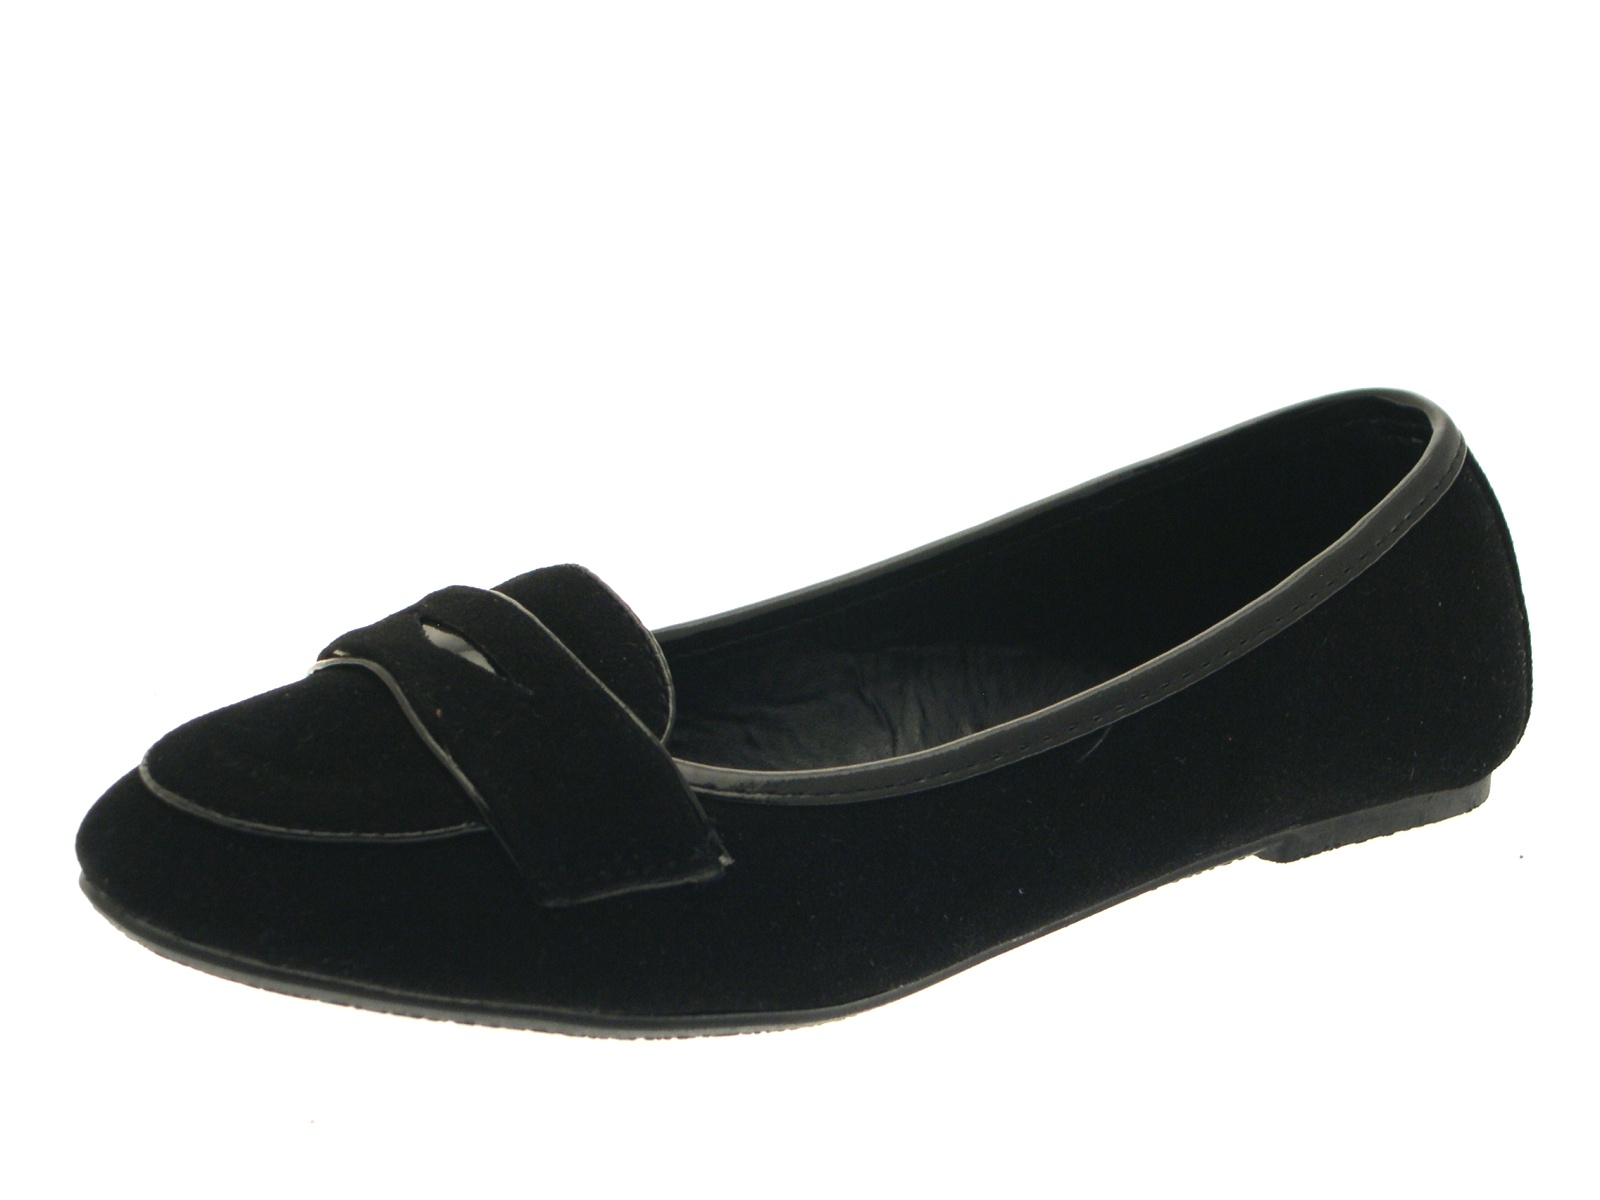 Girls Black Slip On Plain Faux Suede Loafer School Shoes Ballerinas Dolly  Pumps b92016234